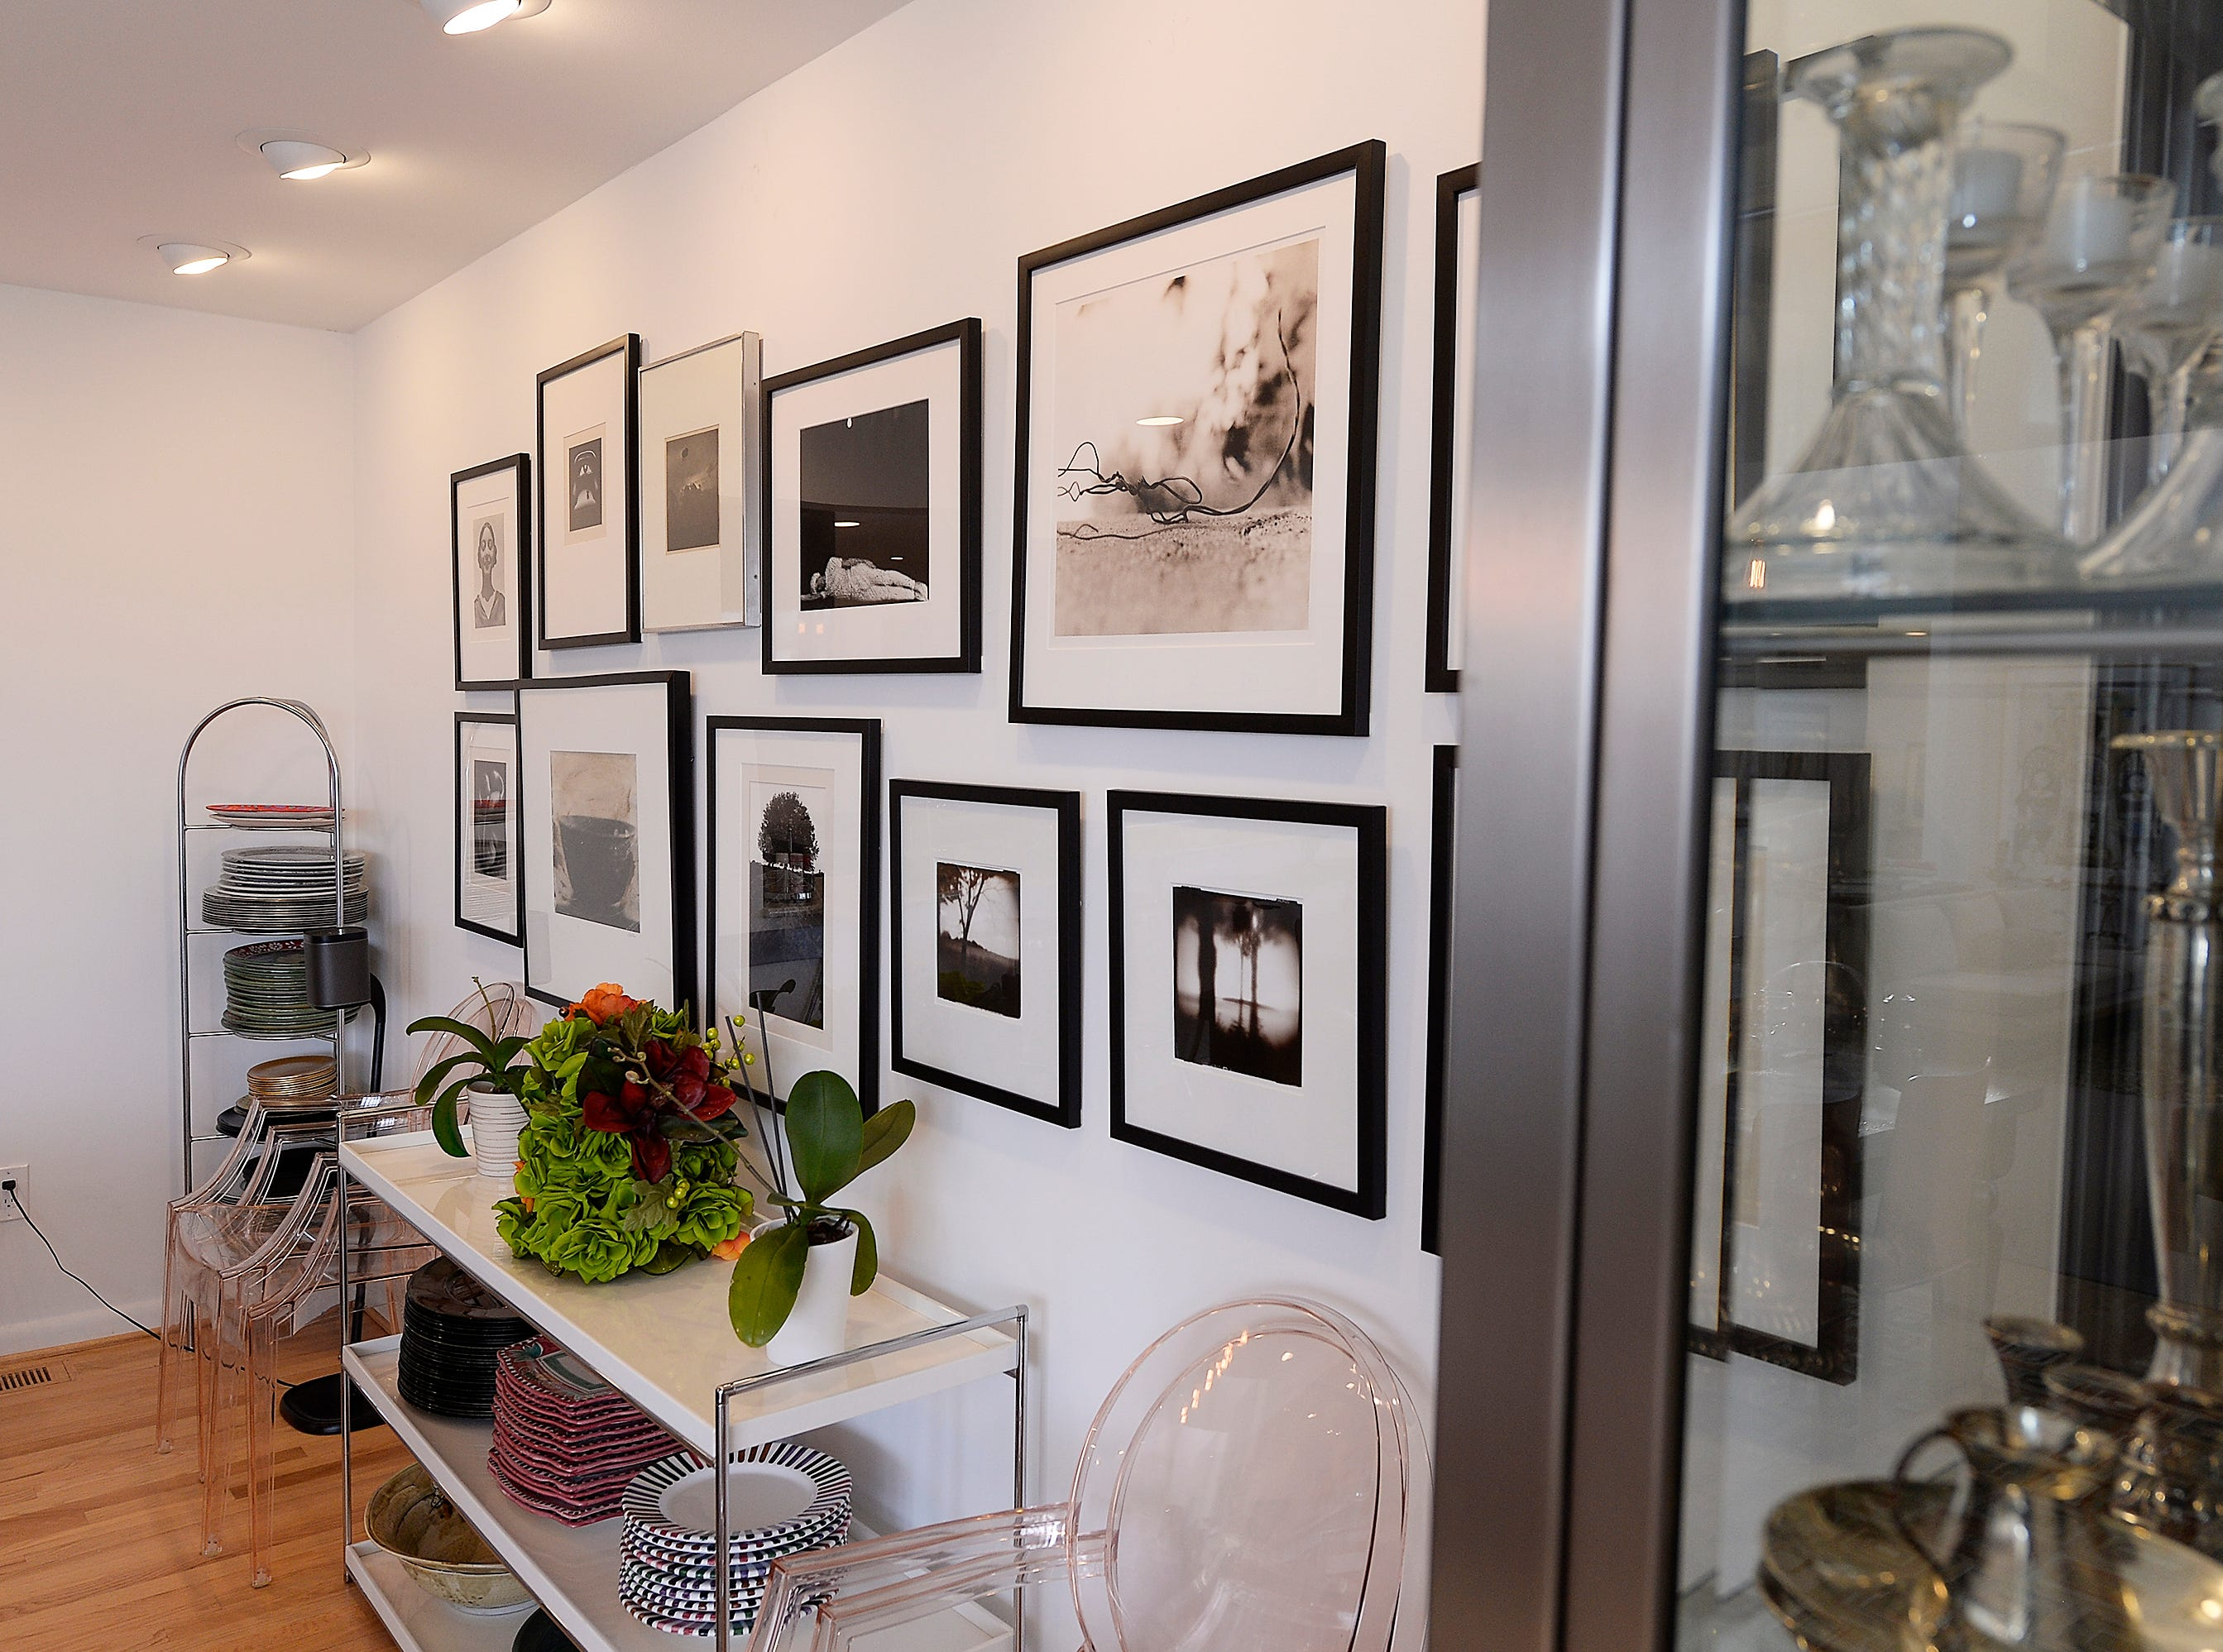 A black & white photo gallery is displayed on the back wall in the dining room.